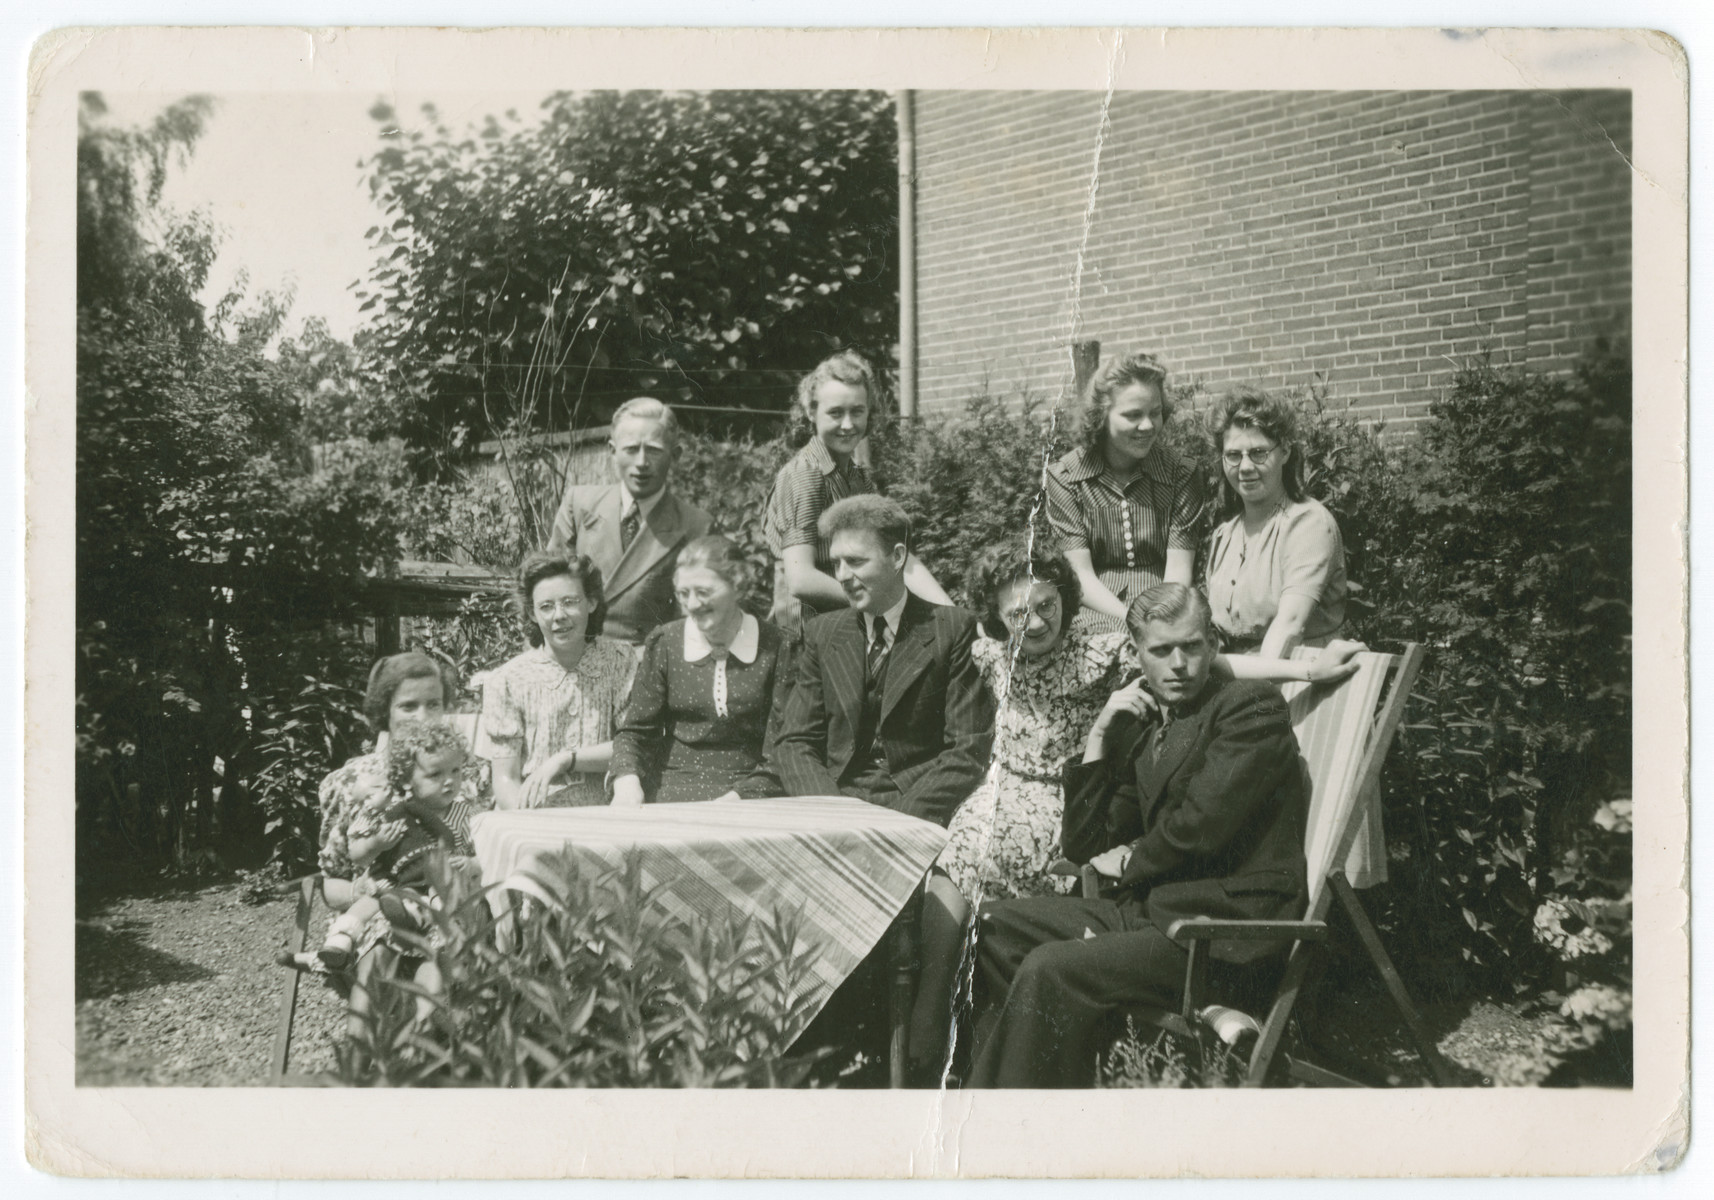 Young people gather outside on the property of the Beuving family, the rescuers of the donor and her sister.  Tiema and Alie Beuving are on the left.  The building in the background was a butcher shop frequented by the Nazis.